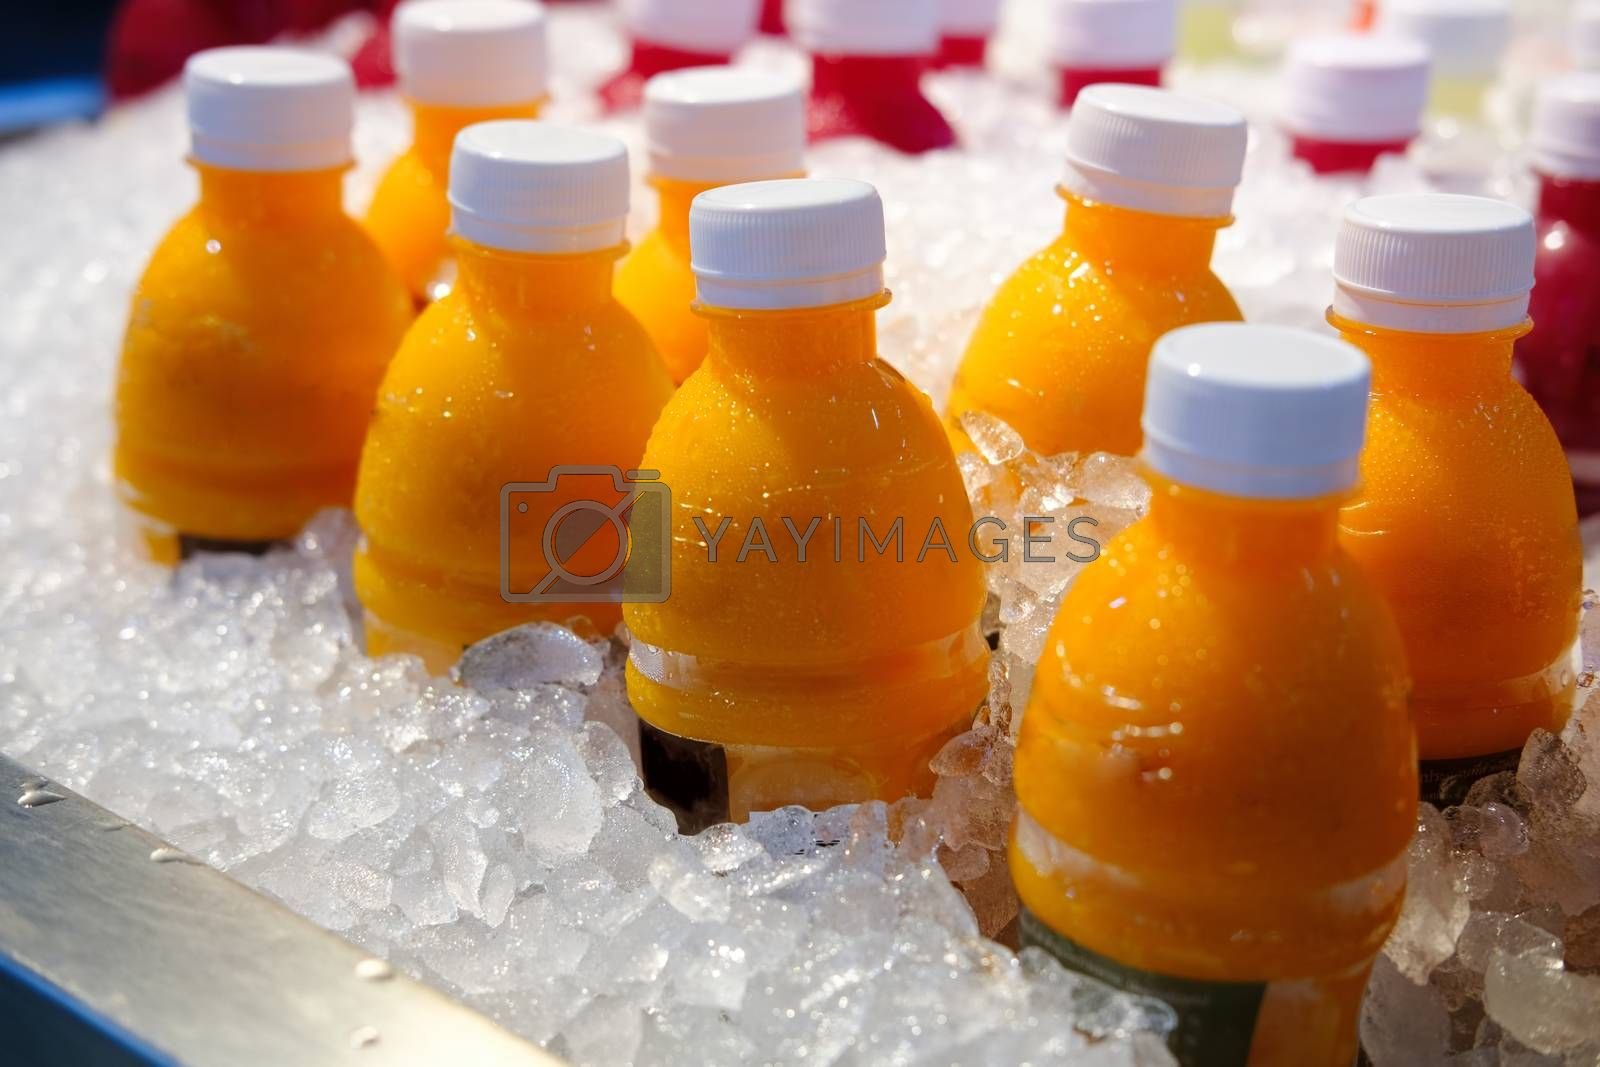 Homemade Fresh Orange juice bottles on the ice box. Mix of plastic bottles on the ice bucket for sale in Thailand food market.